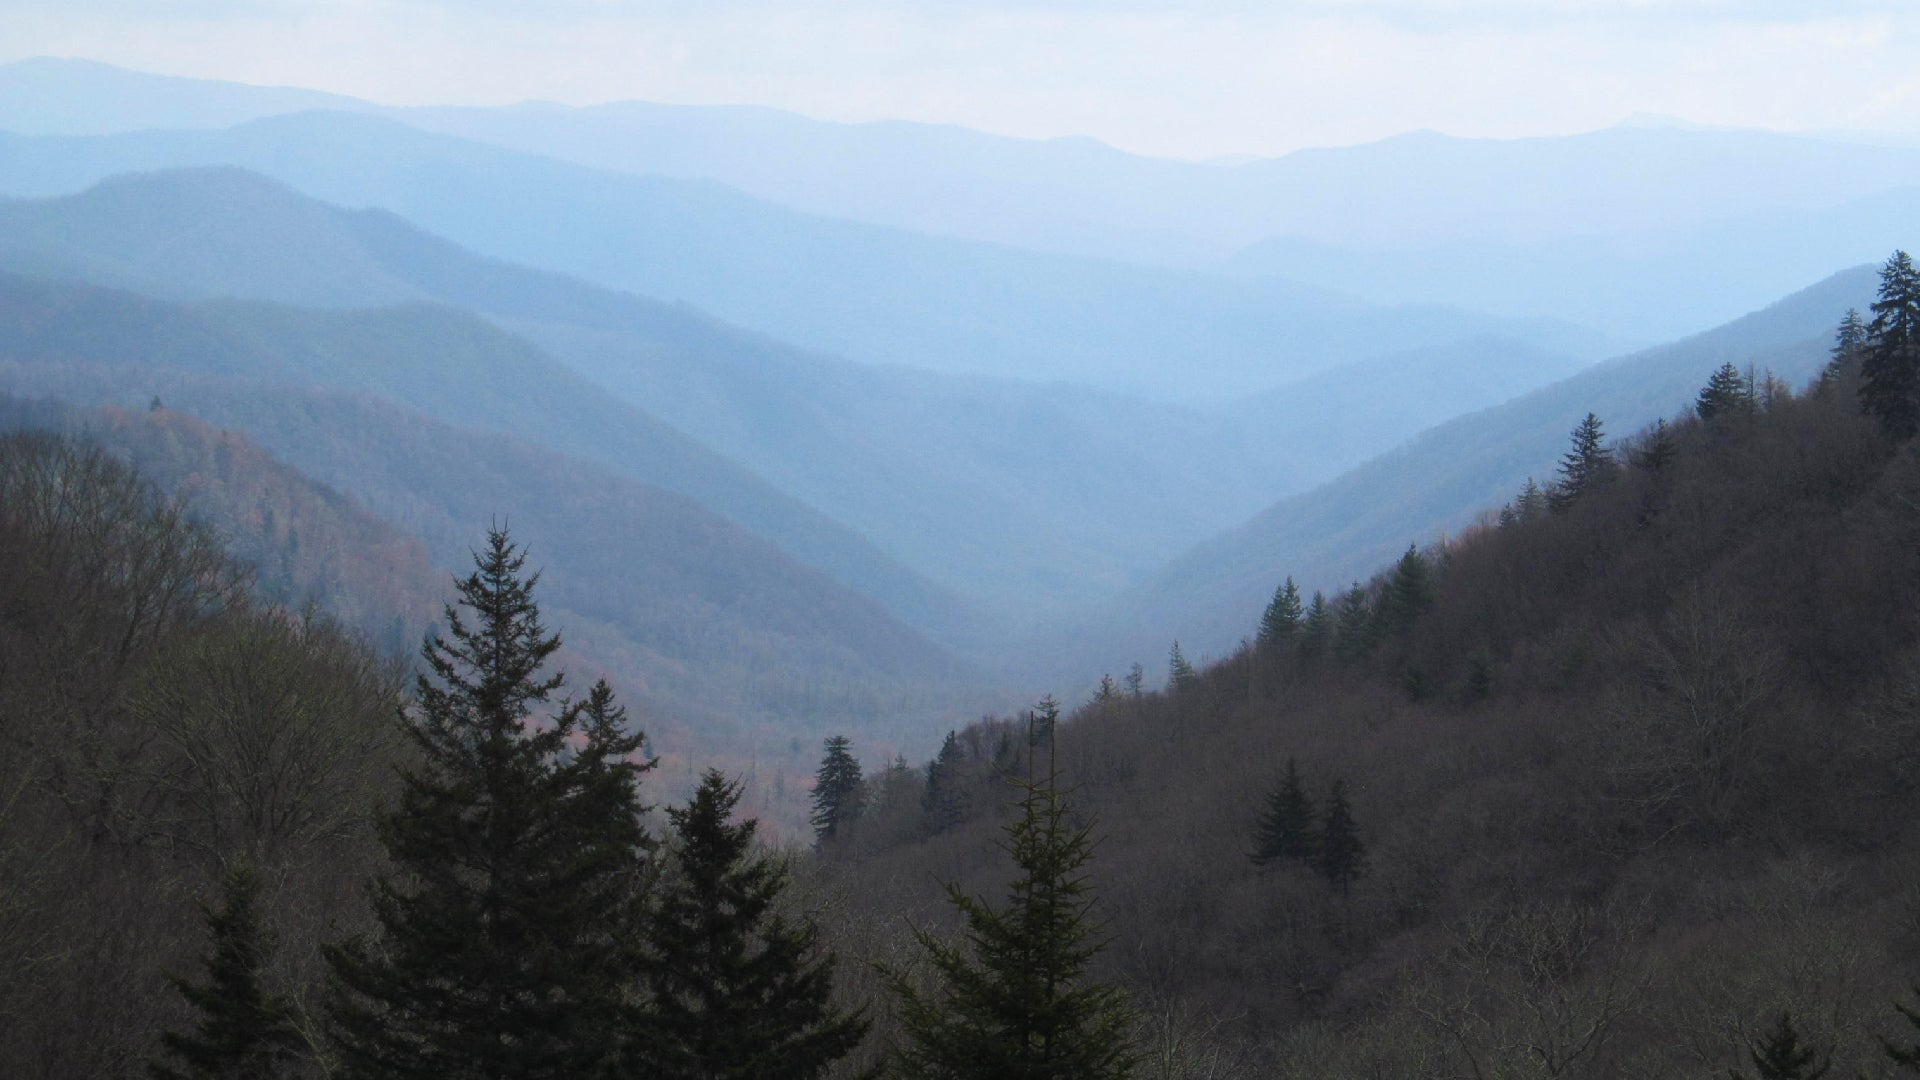 These tough hikes will get you to some of the best views in the Smoky Mountains.Doug Kerr